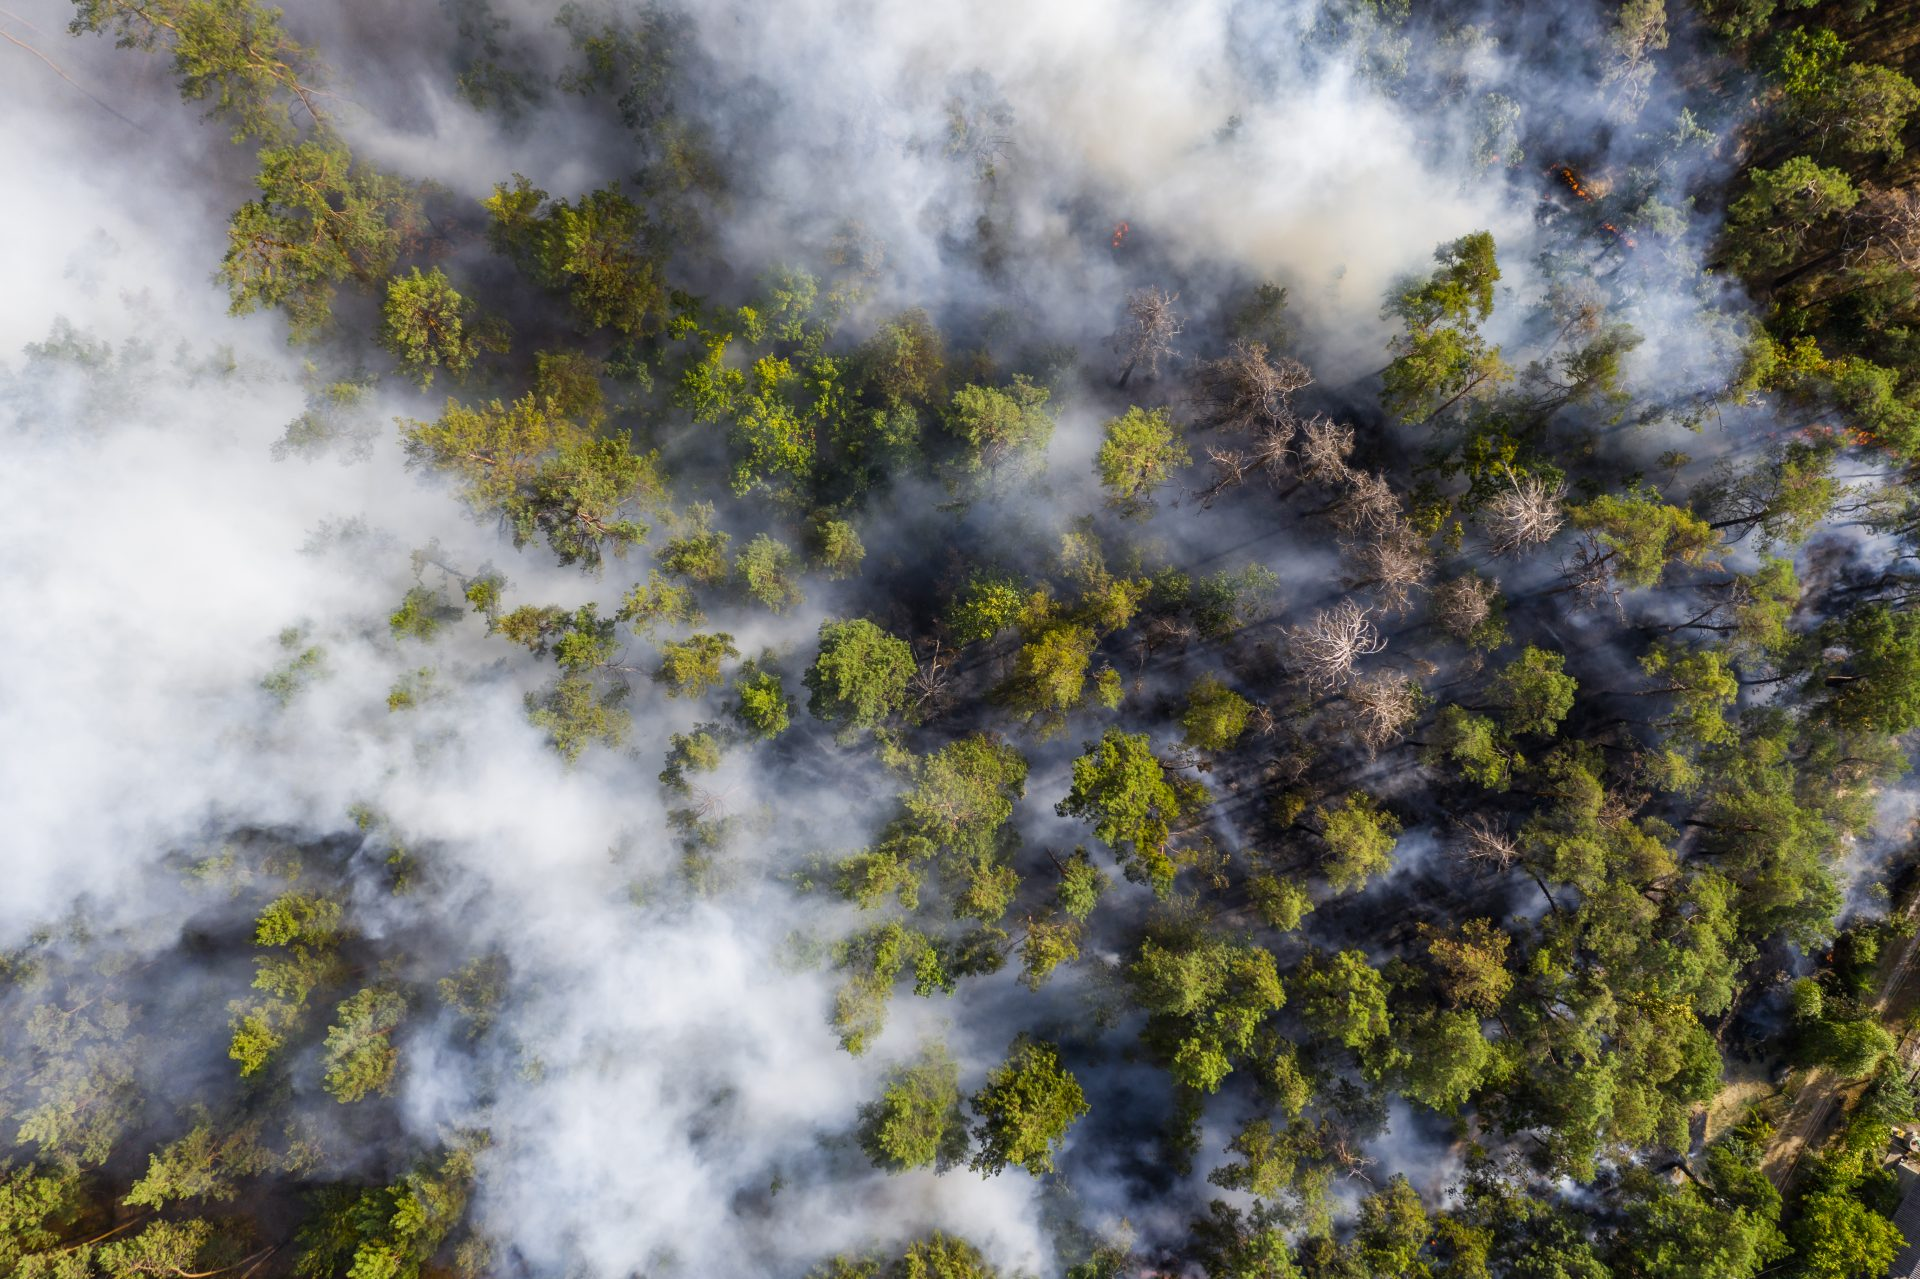 Aerial view of wildfire